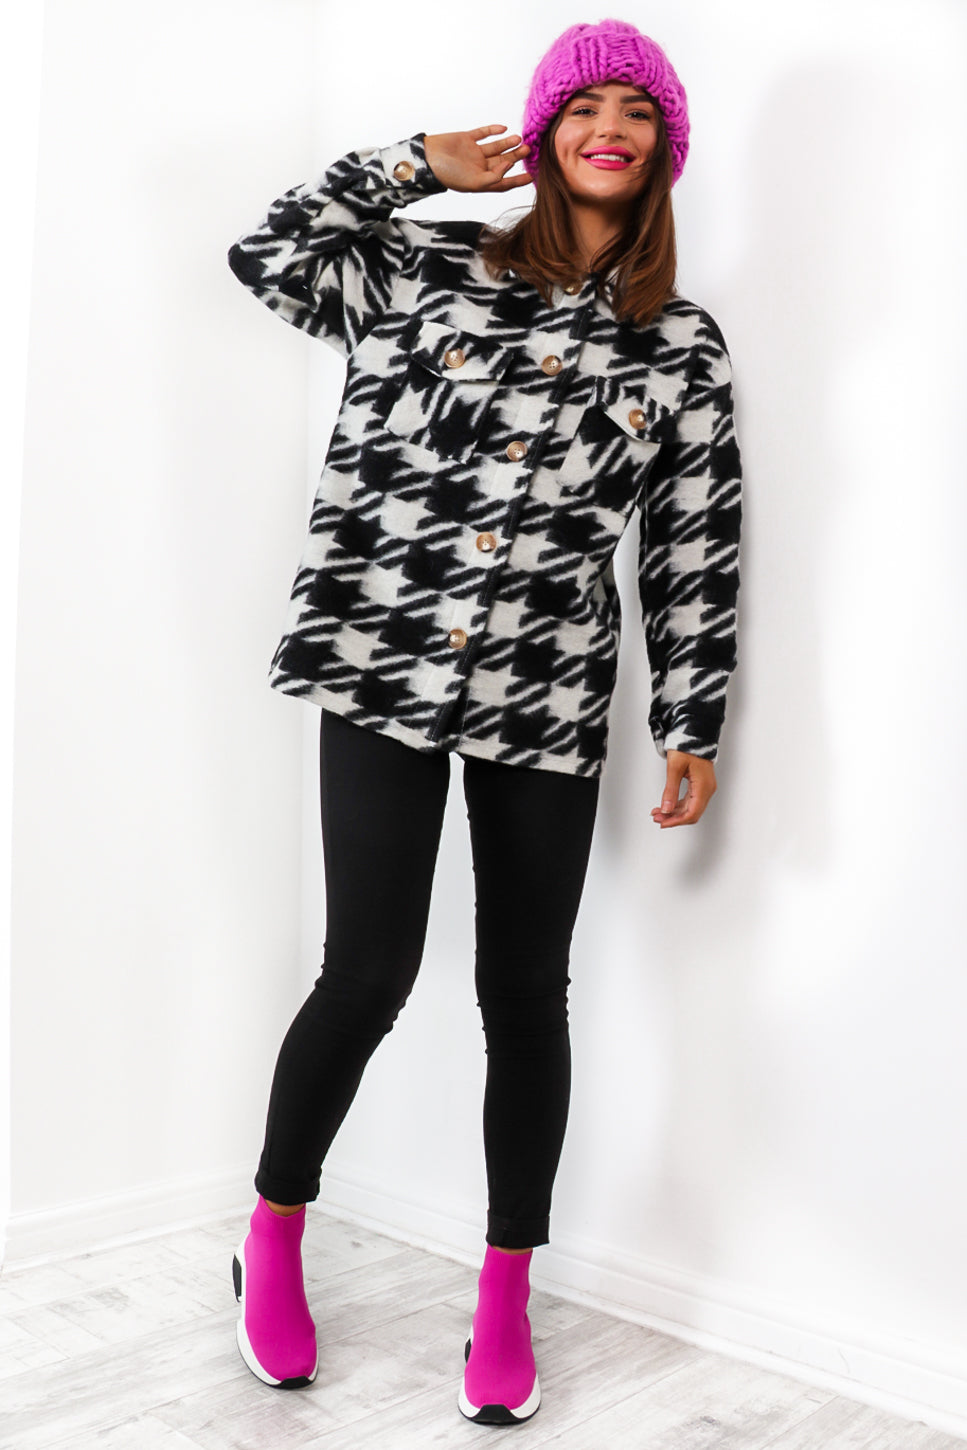 We Hound Love - Black White Houndstooth Shacket